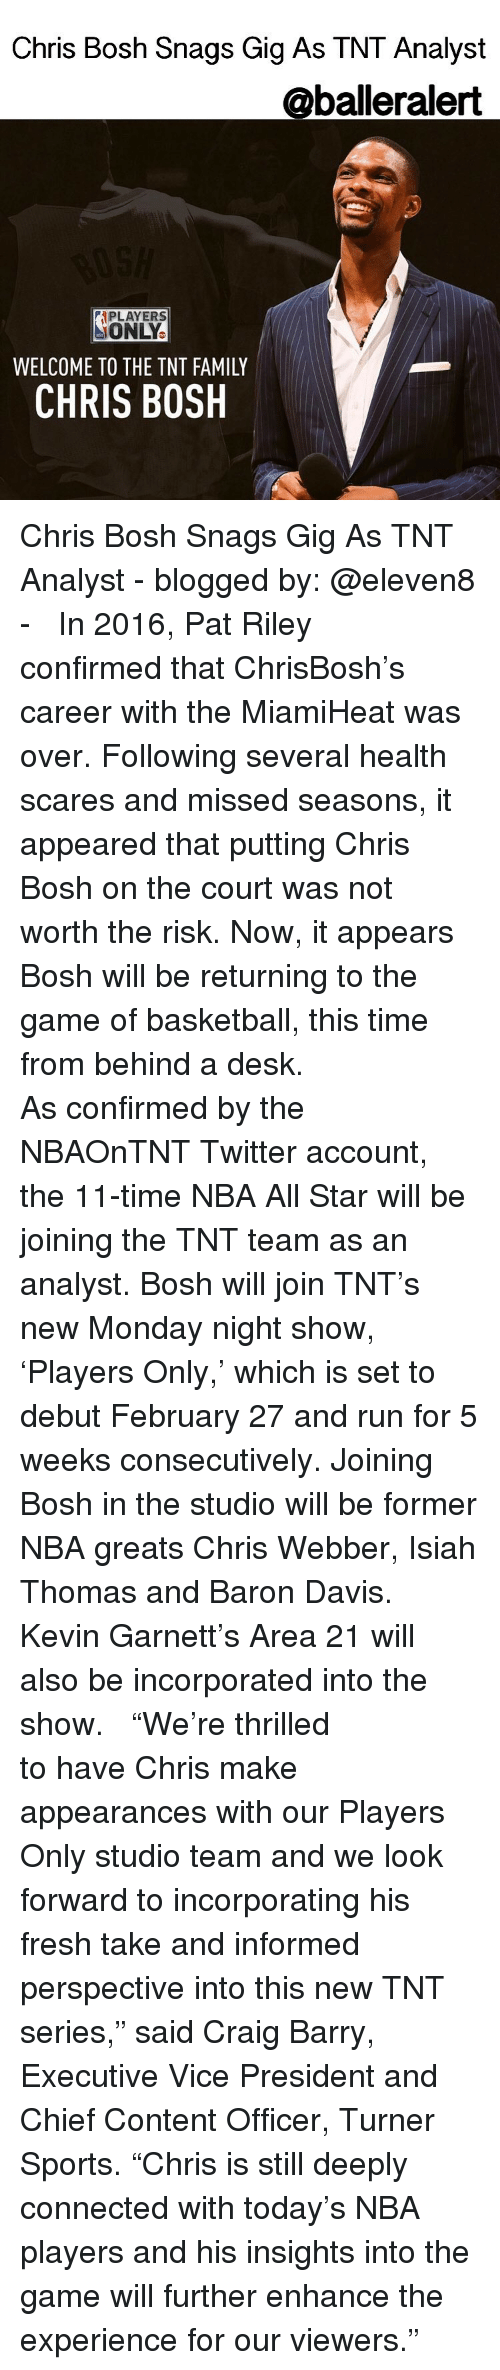 "All Star, Baller Alert, and Chris Bosh: Chris Bosh Snags Gig As TNT Analyst  @baller alert  APLAYERS  ONLY.  WELCOME TO THE TNT FAMILY  CHRIS BOSH Chris Bosh Snags Gig As TNT Analyst - blogged by: @eleven8 - ⠀⠀⠀⠀⠀⠀⠀⠀ ⠀⠀⠀⠀⠀⠀⠀⠀ In 2016, Pat Riley confirmed that ChrisBosh's career with the MiamiHeat was over. Following several health scares and missed seasons, it appeared that putting Chris Bosh on the court was not worth the risk. Now, it appears Bosh will be returning to the game of basketball, this time from behind a desk. ⠀⠀⠀⠀⠀⠀⠀⠀ ⠀⠀⠀⠀⠀⠀⠀⠀ As confirmed by the NBAOnTNT Twitter account, the 11-time NBA All Star will be joining the TNT team as an analyst. Bosh will join TNT's new Monday night show, 'Players Only,' which is set to debut February 27 and run for 5 weeks consecutively. Joining Bosh in the studio will be former NBA greats Chris Webber, Isiah Thomas and Baron Davis. Kevin Garnett's Area 21 will also be incorporated into the show. ⠀⠀⠀⠀⠀⠀⠀⠀ ⠀⠀⠀⠀⠀⠀⠀⠀ ""We're thrilled to have Chris make appearances with our Players Only studio team and we look forward to incorporating his fresh take and informed perspective into this new TNT series,"" said Craig Barry, Executive Vice President and Chief Content Officer, Turner Sports. ""Chris is still deeply connected with today's NBA players and his insights into the game will further enhance the experience for our viewers."""